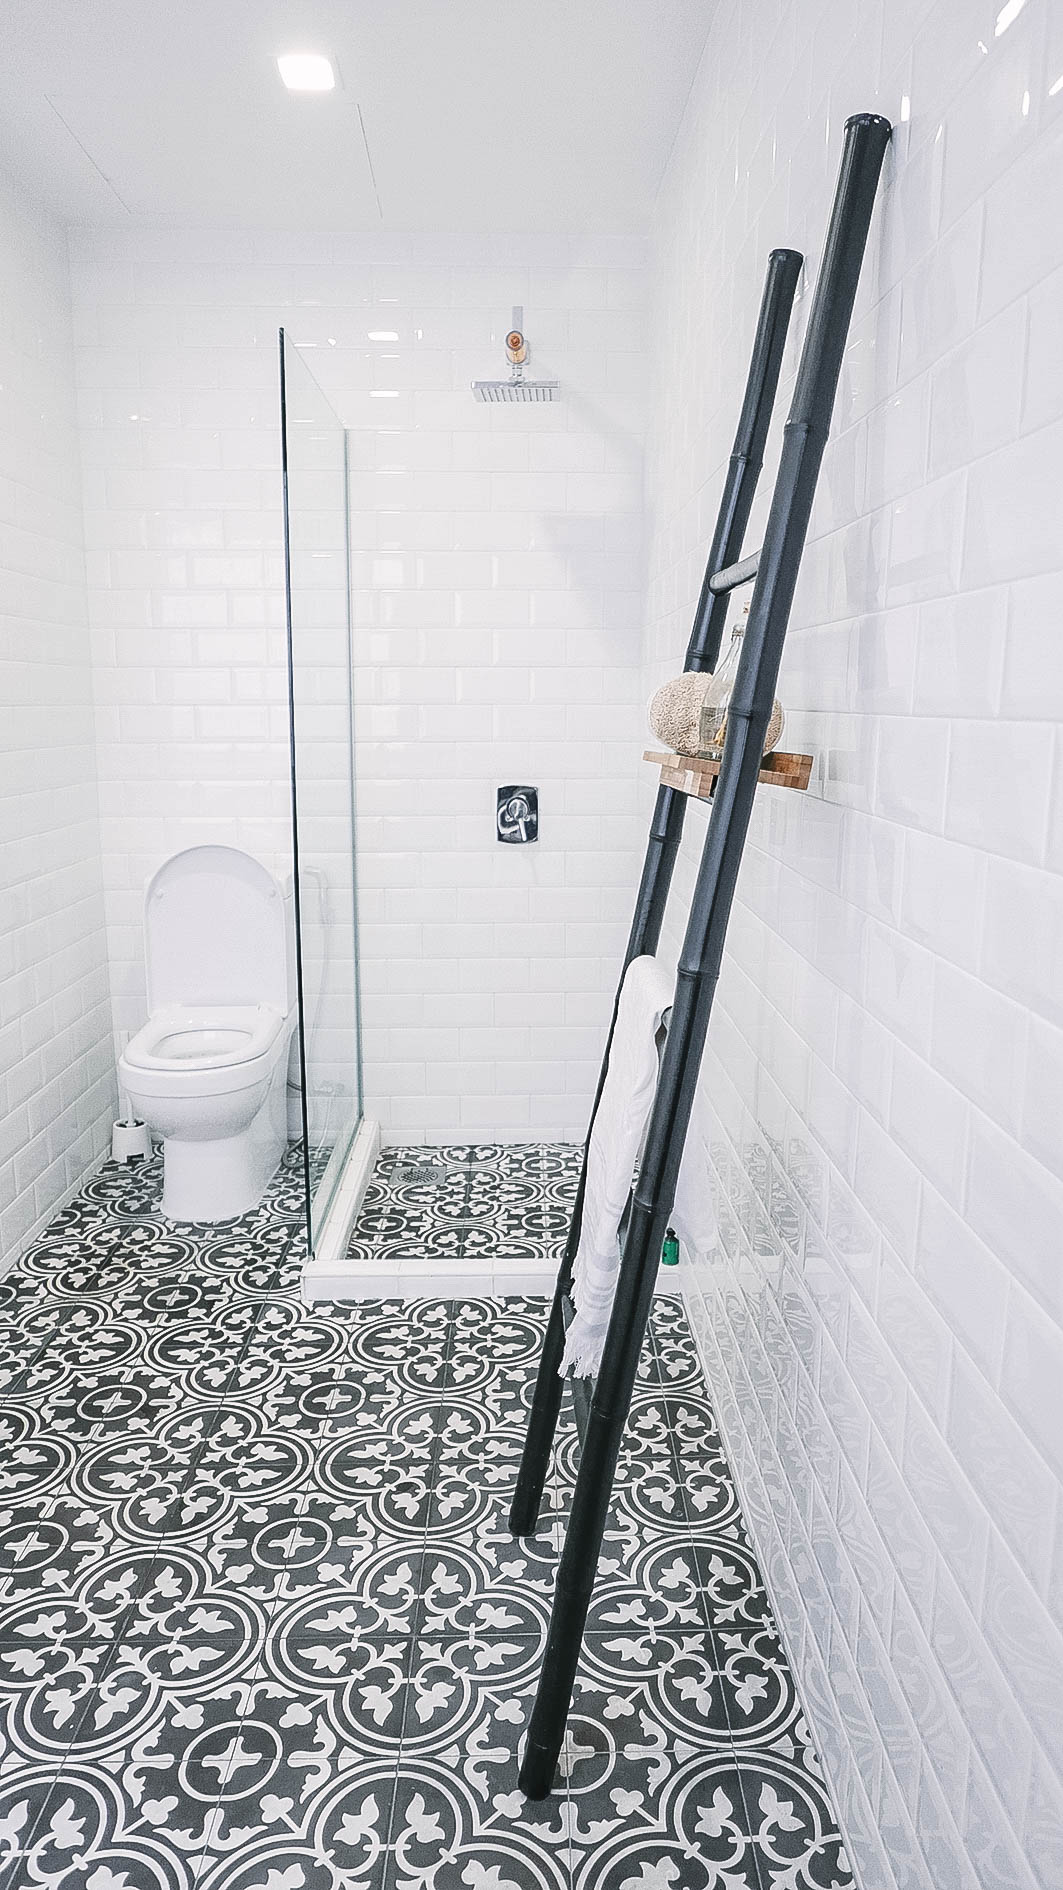 Monochrome Bathroom Floor Tiles Shower